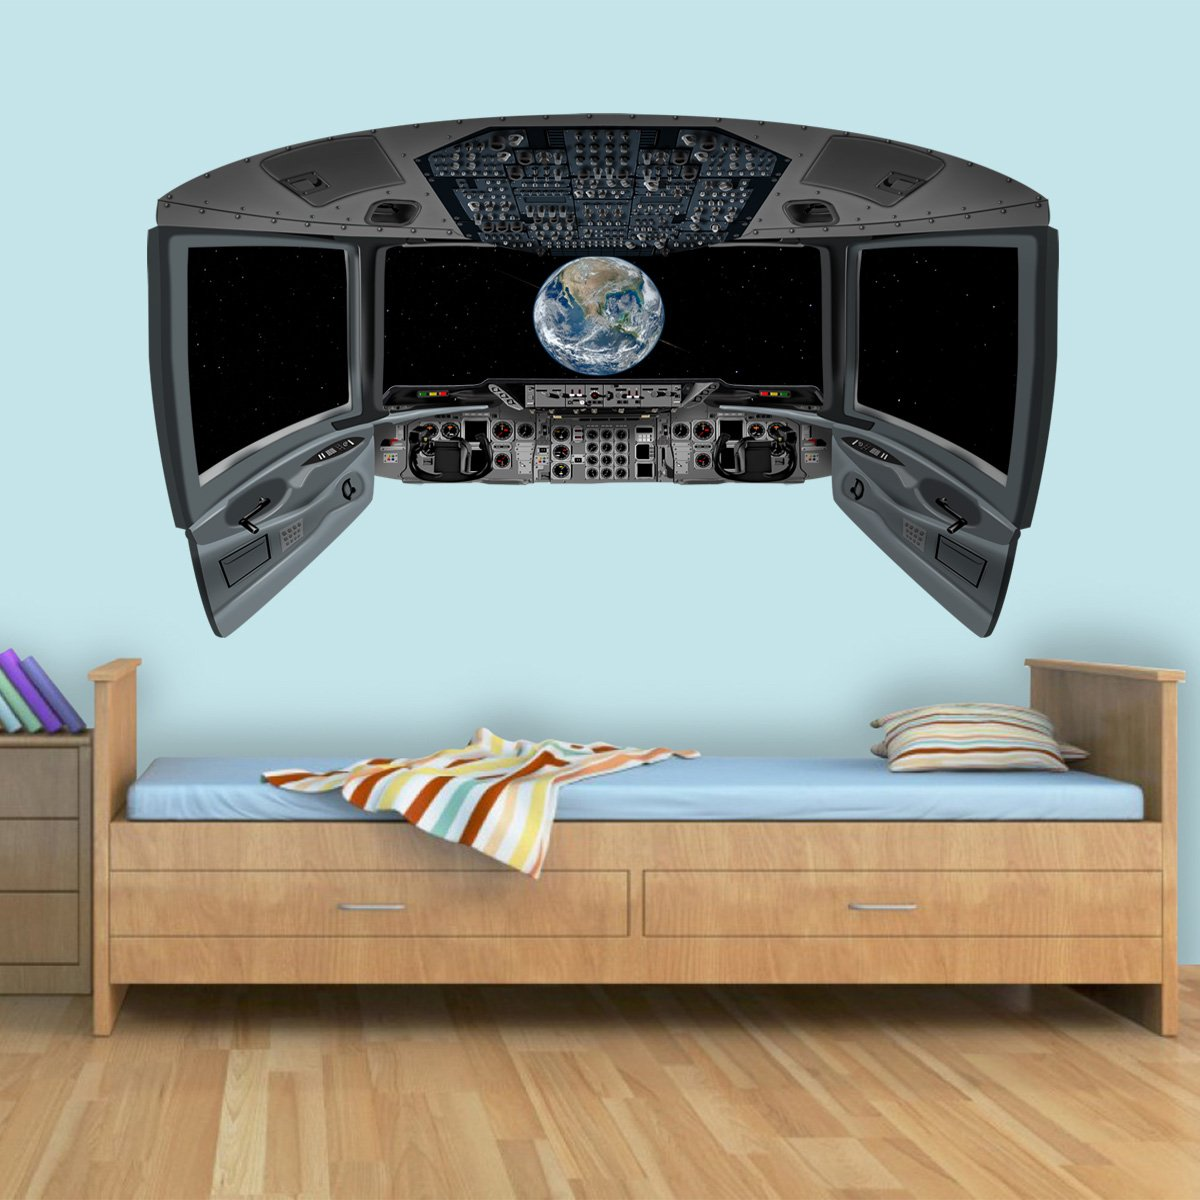 VWAQ Spaceship Cockpit Wall Mural - Earth Window Sticker - CP7 - VWAQ Vinyl Wall Art Quotes and Prints